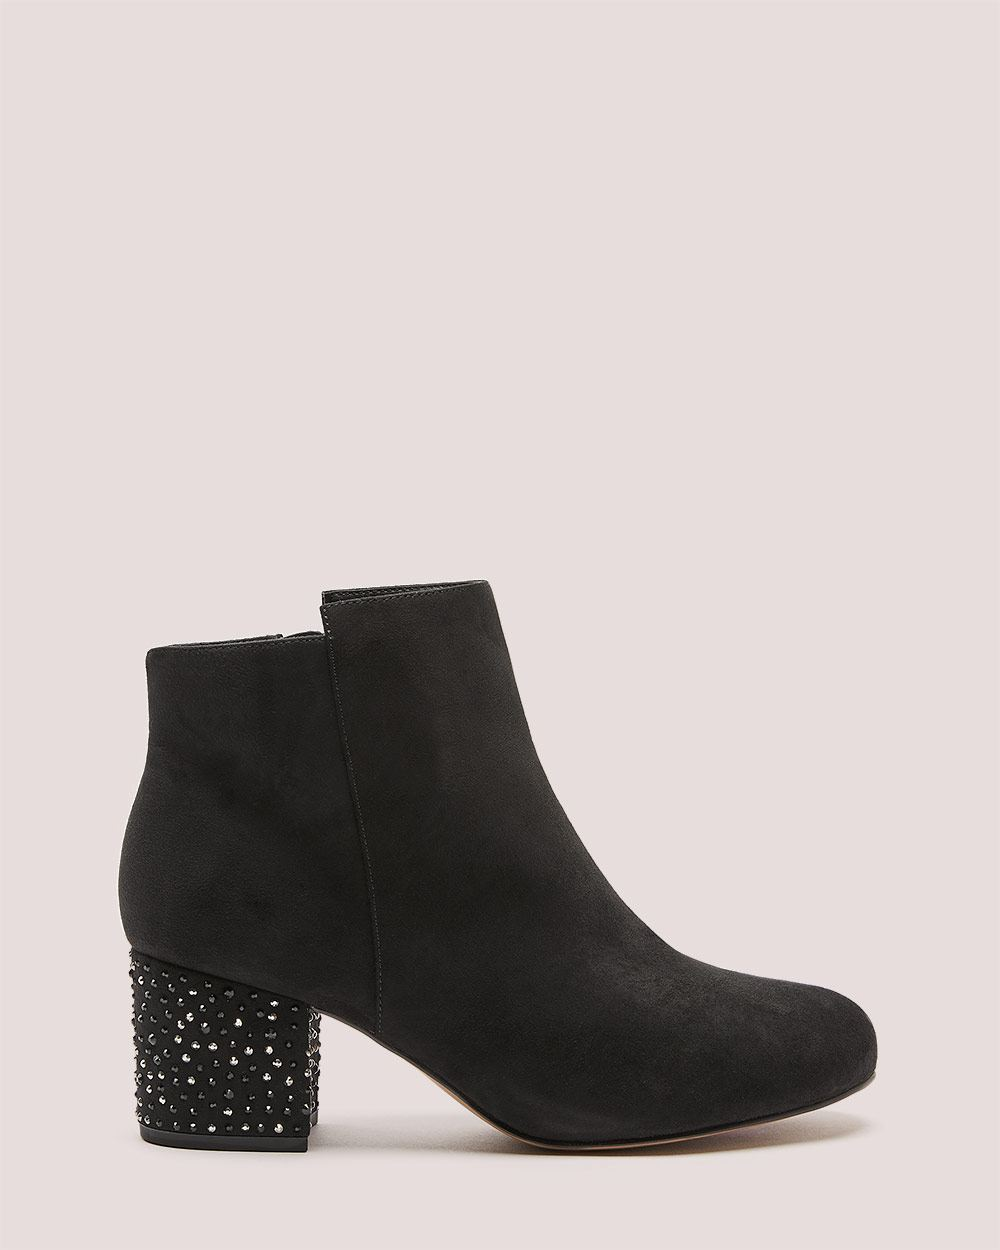 Rhinestone Heel Bootie - Addition Elle ($99 CAD)